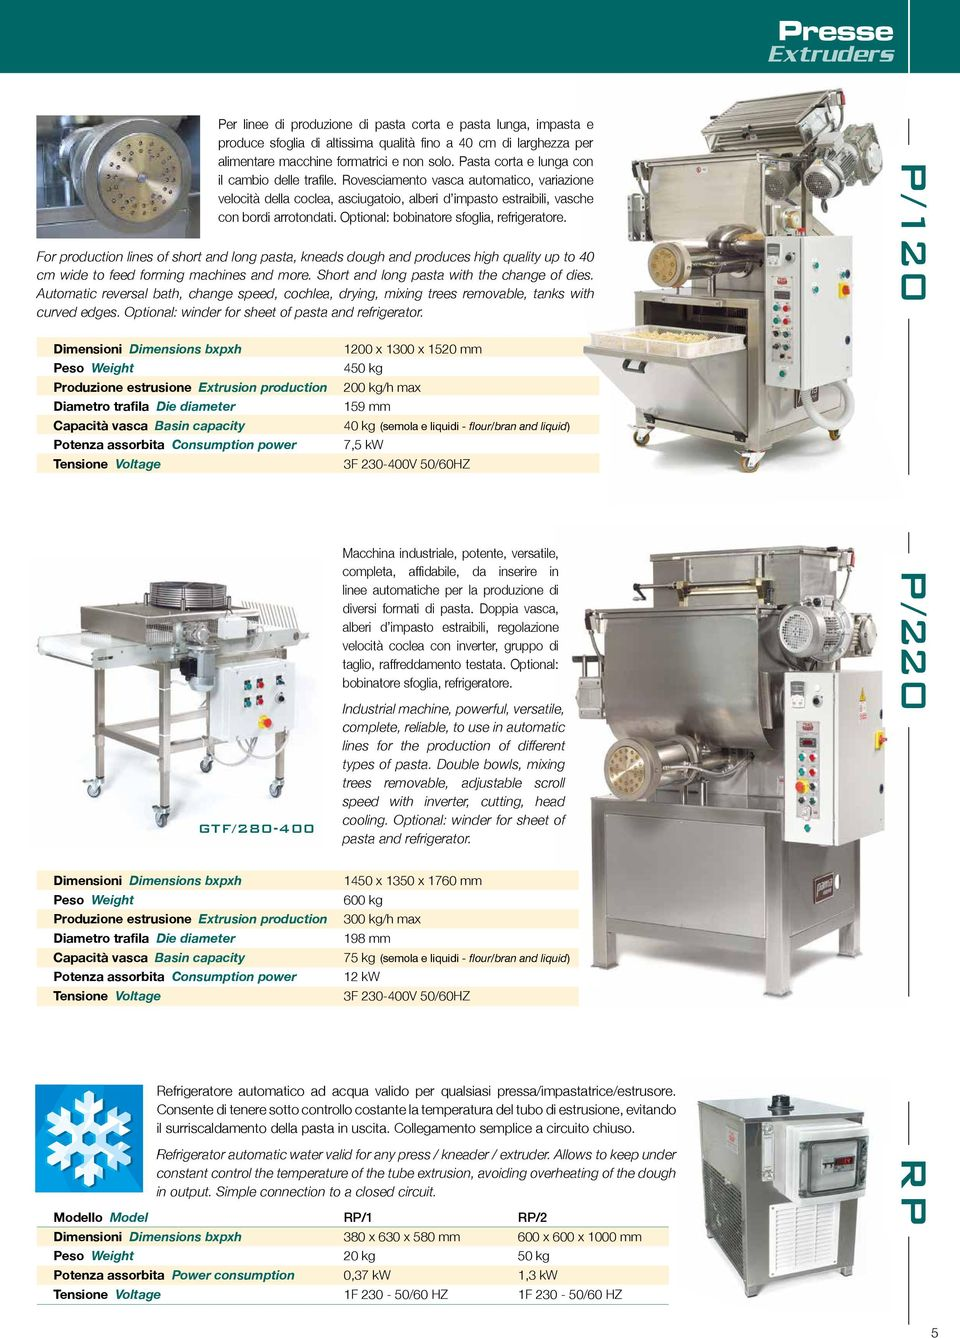 Optional: bobinatore sfoglia, refrigeratore. For production lines of short and long pasta, kneads dough and produces high quality up to 40 cm wide to feed forming machines and more.